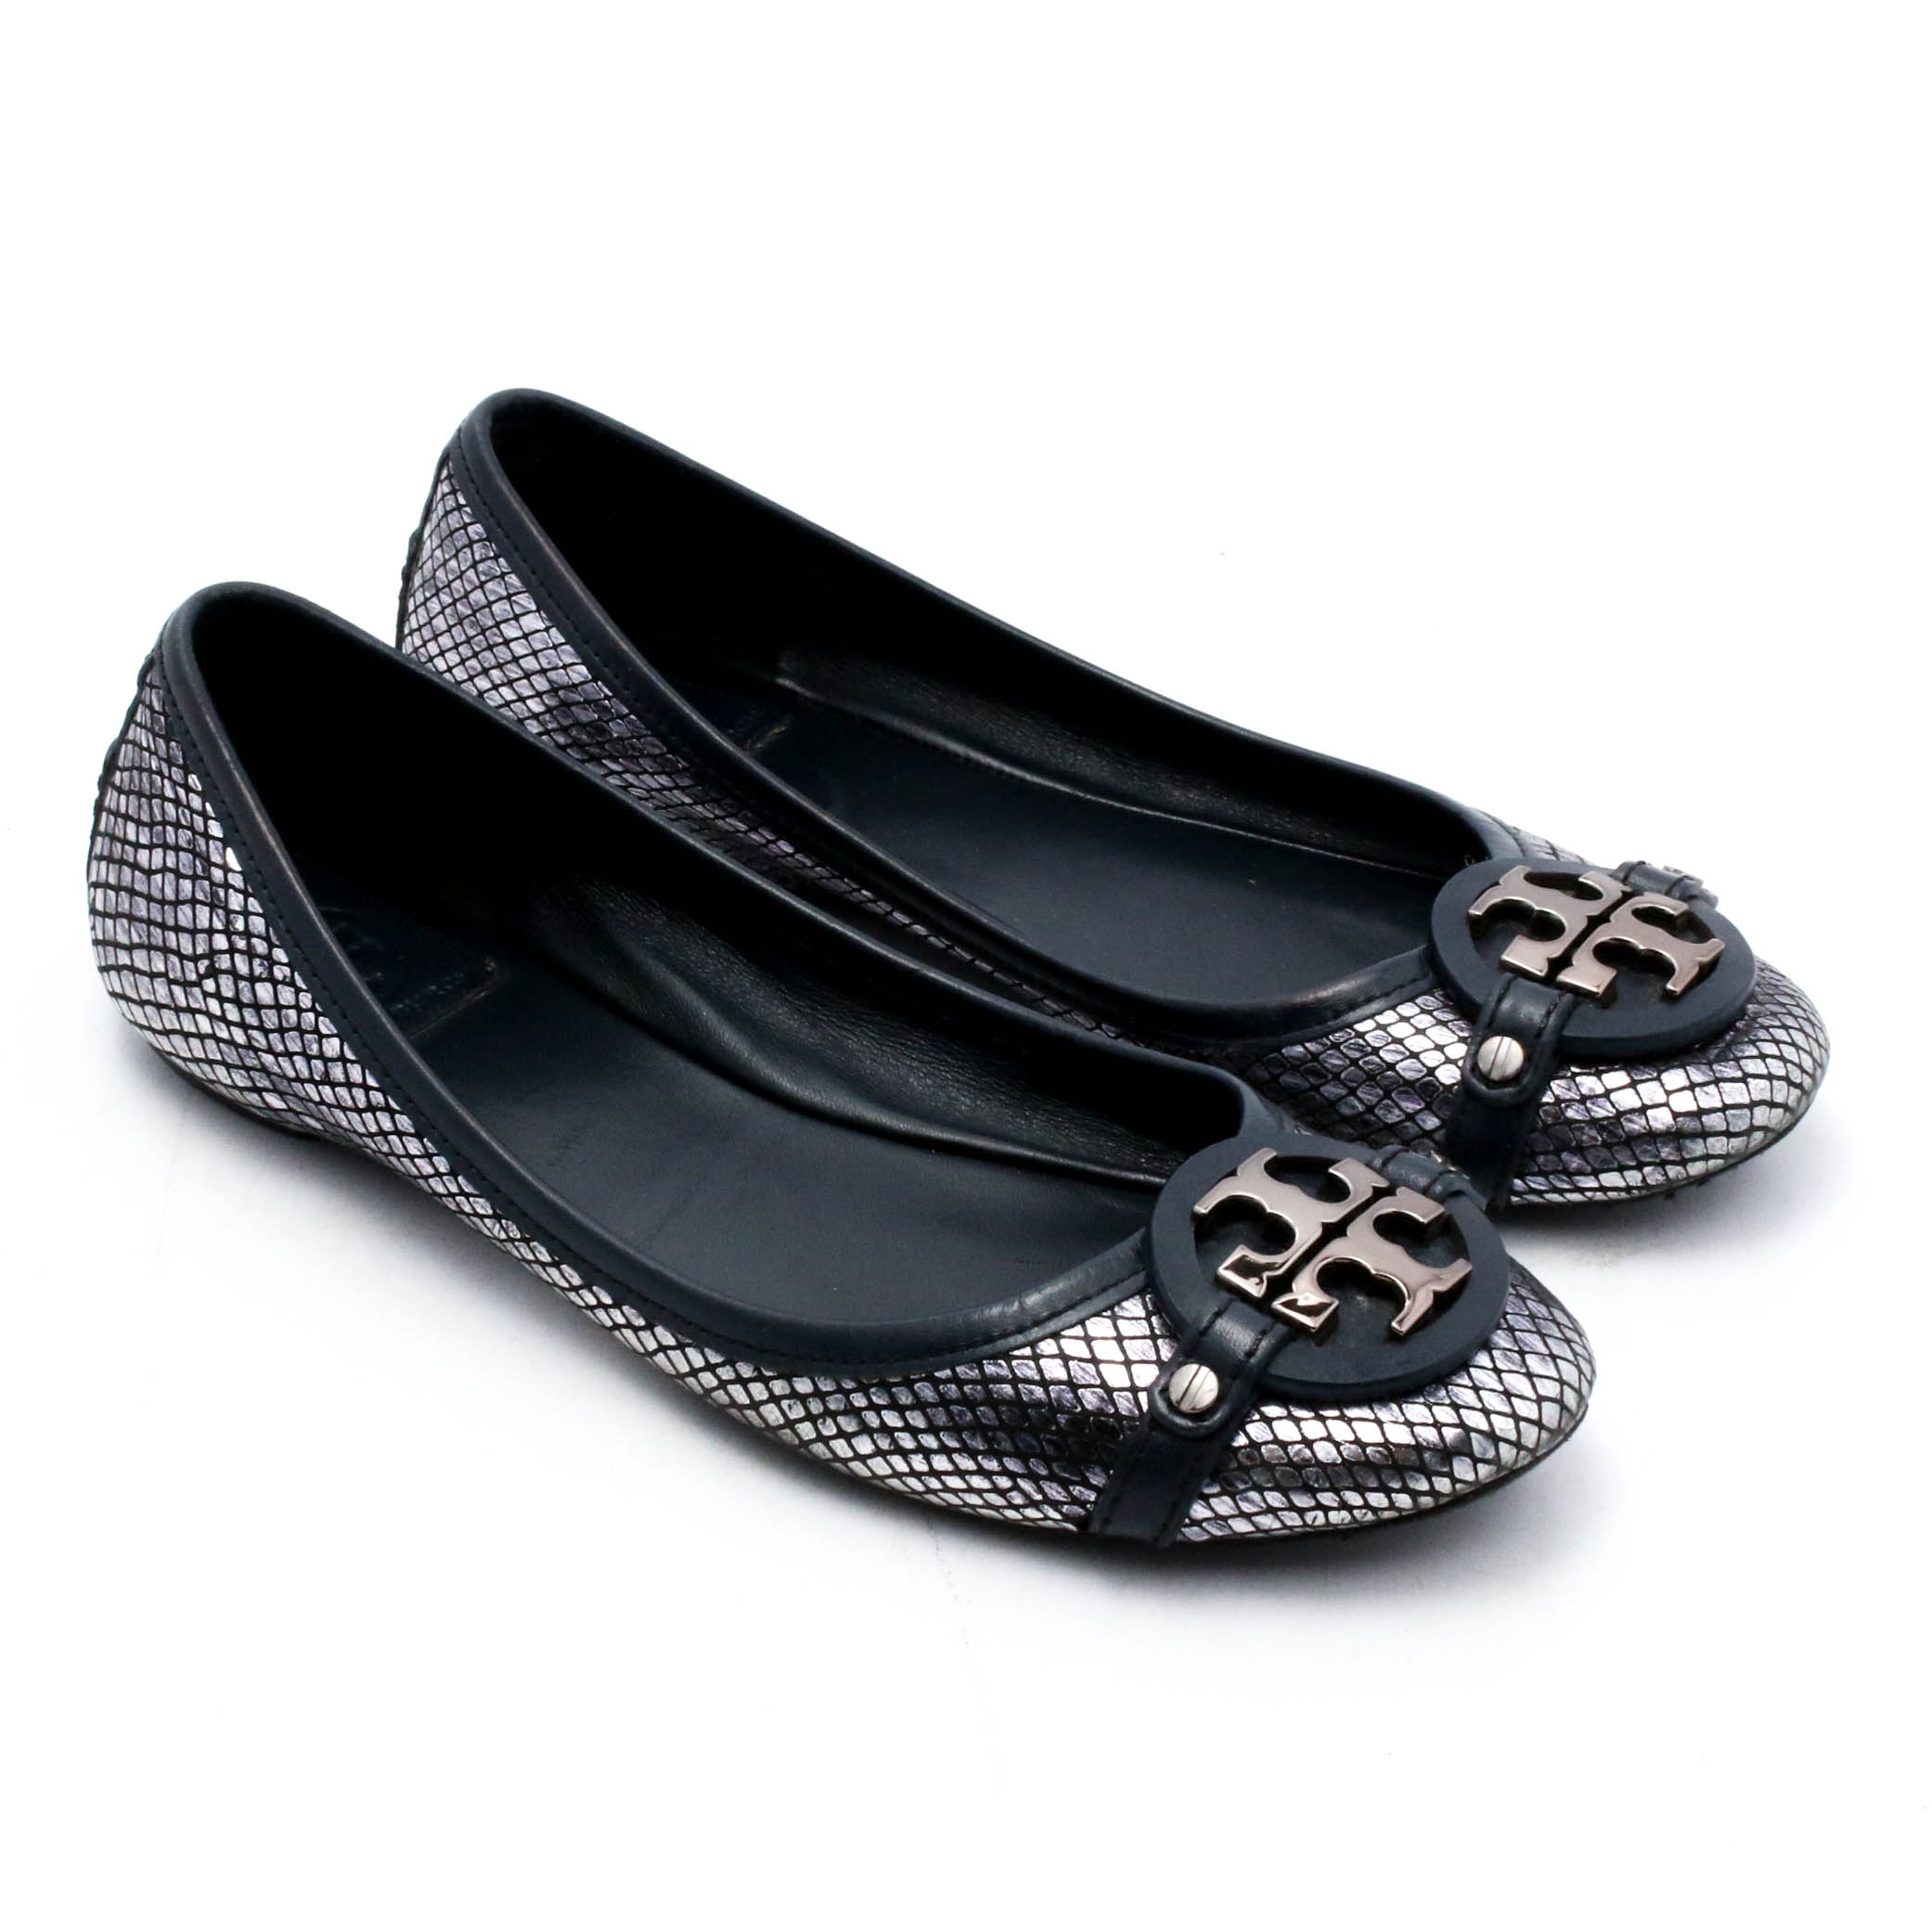 Tory Burch Silver Metallic and Black Leather Flats